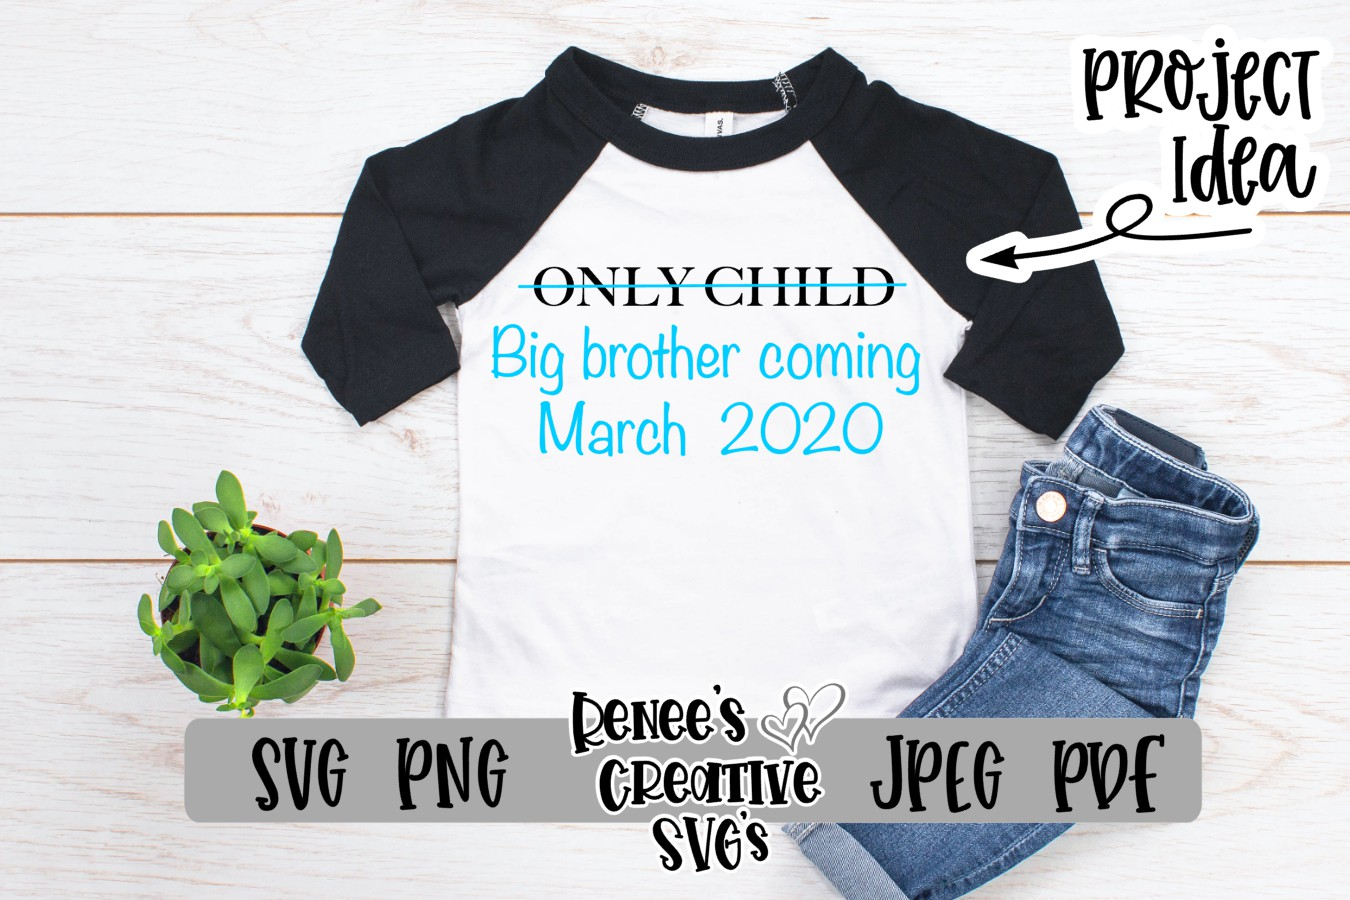 Only child, Big brother | SVG Cutting File example image 2